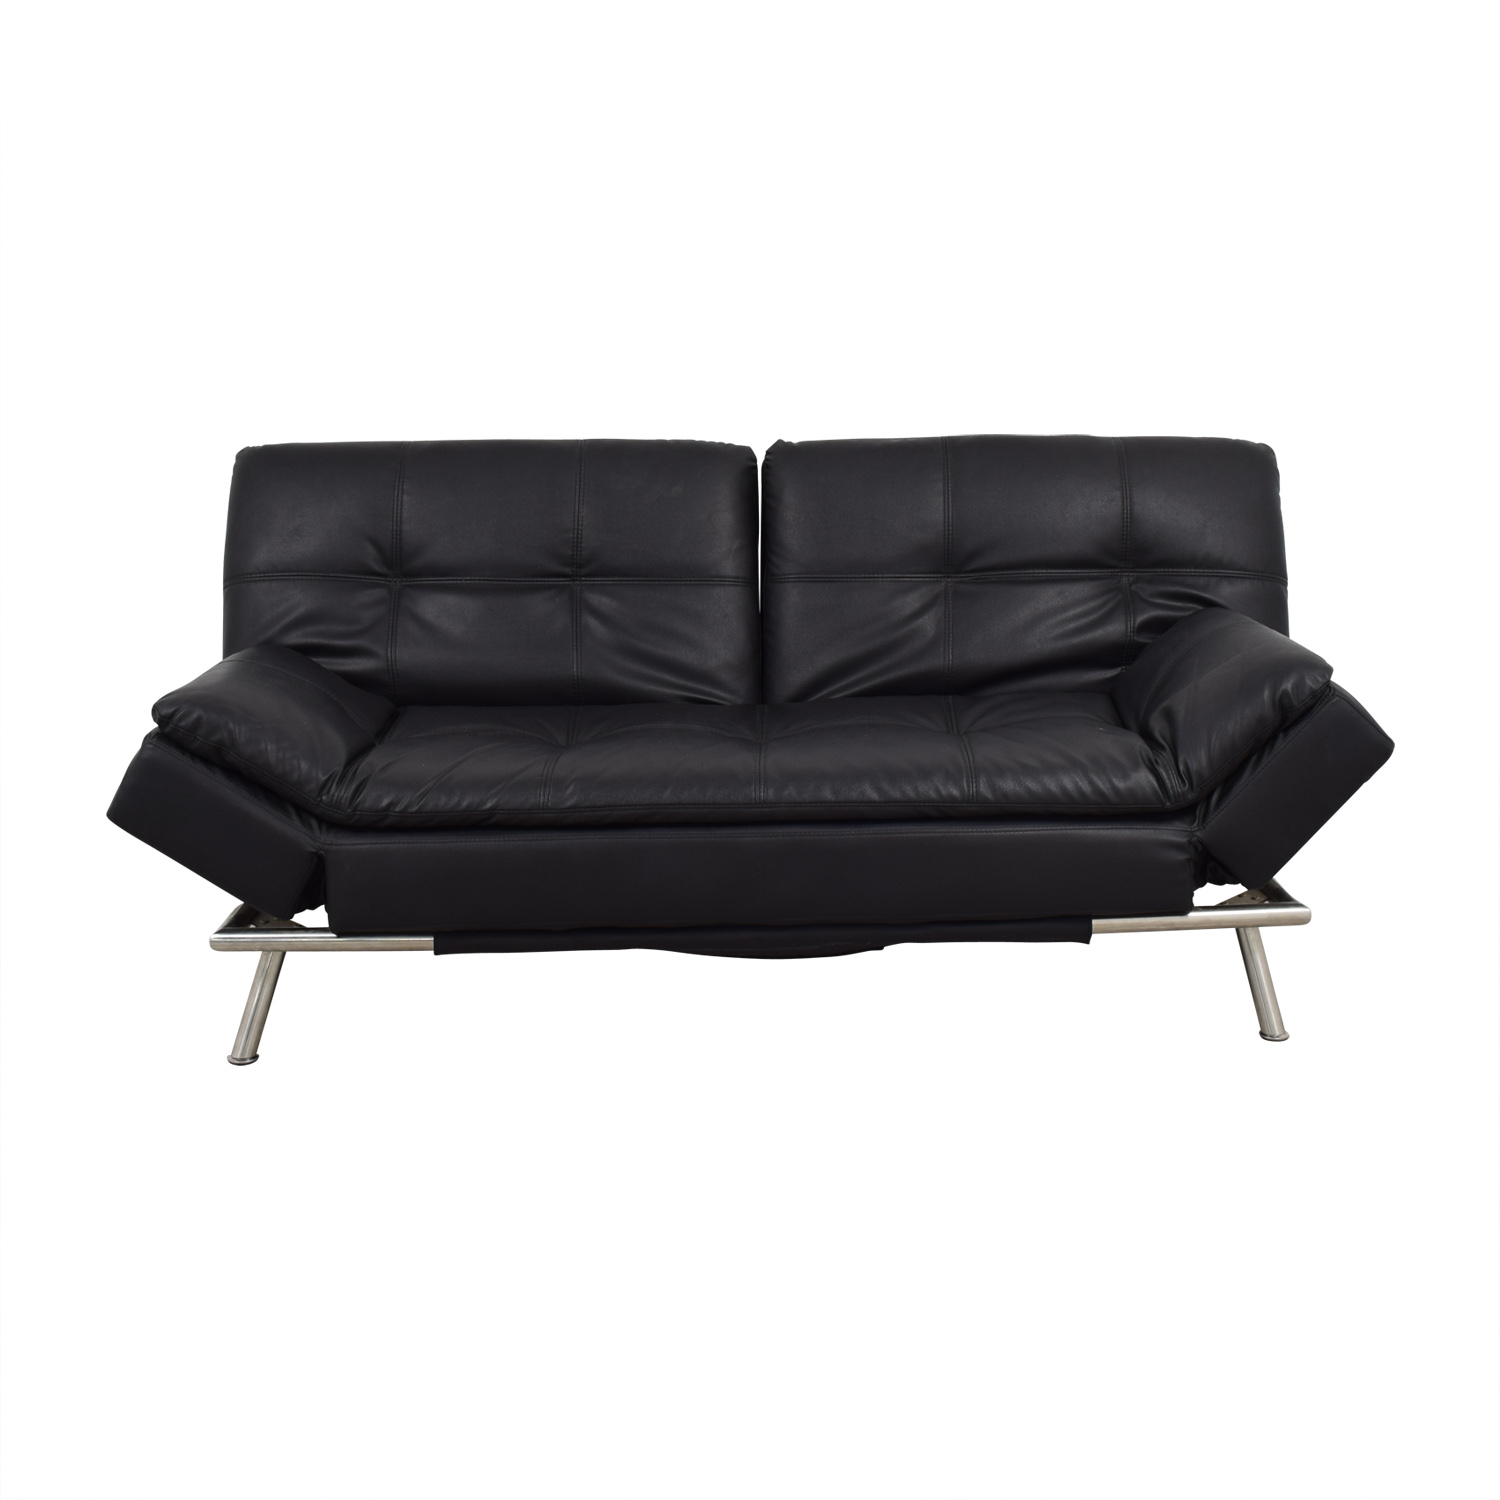 Black Leather Chesterfield Futon price